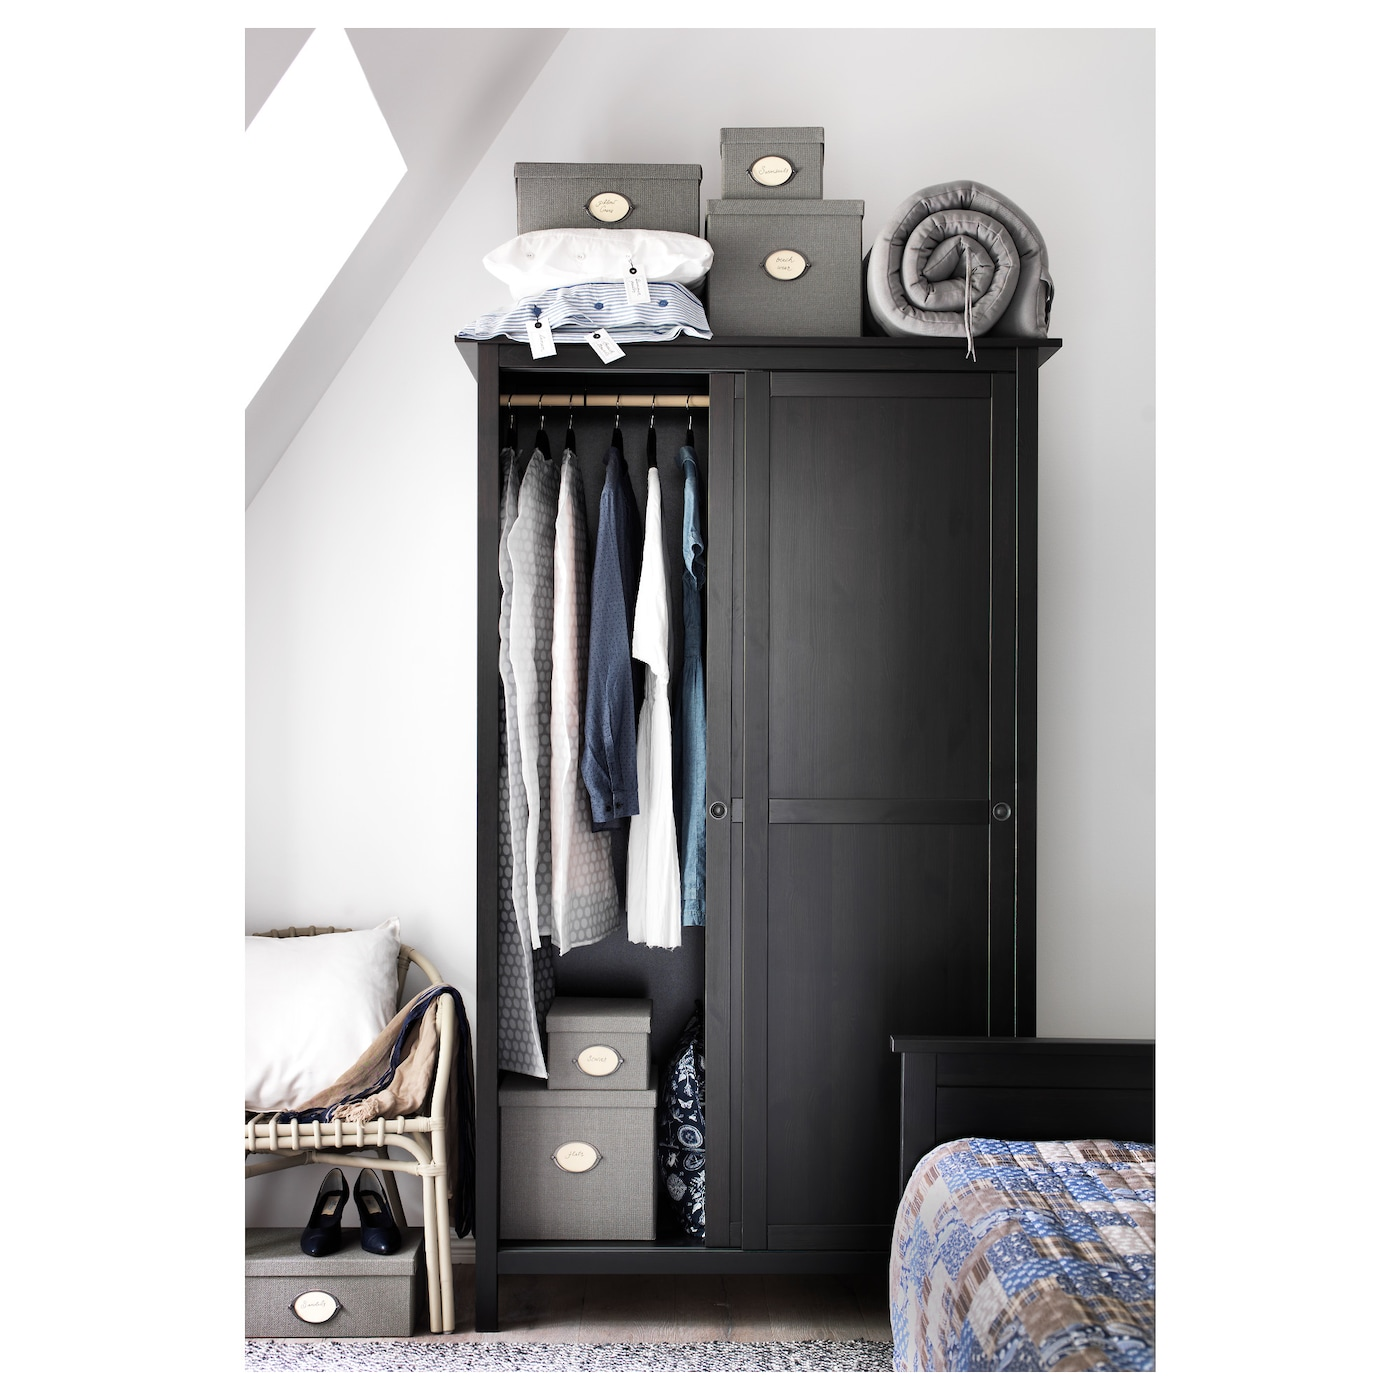 hemnes armoire 2 portes coulissantes brun noir 120 x 197. Black Bedroom Furniture Sets. Home Design Ideas